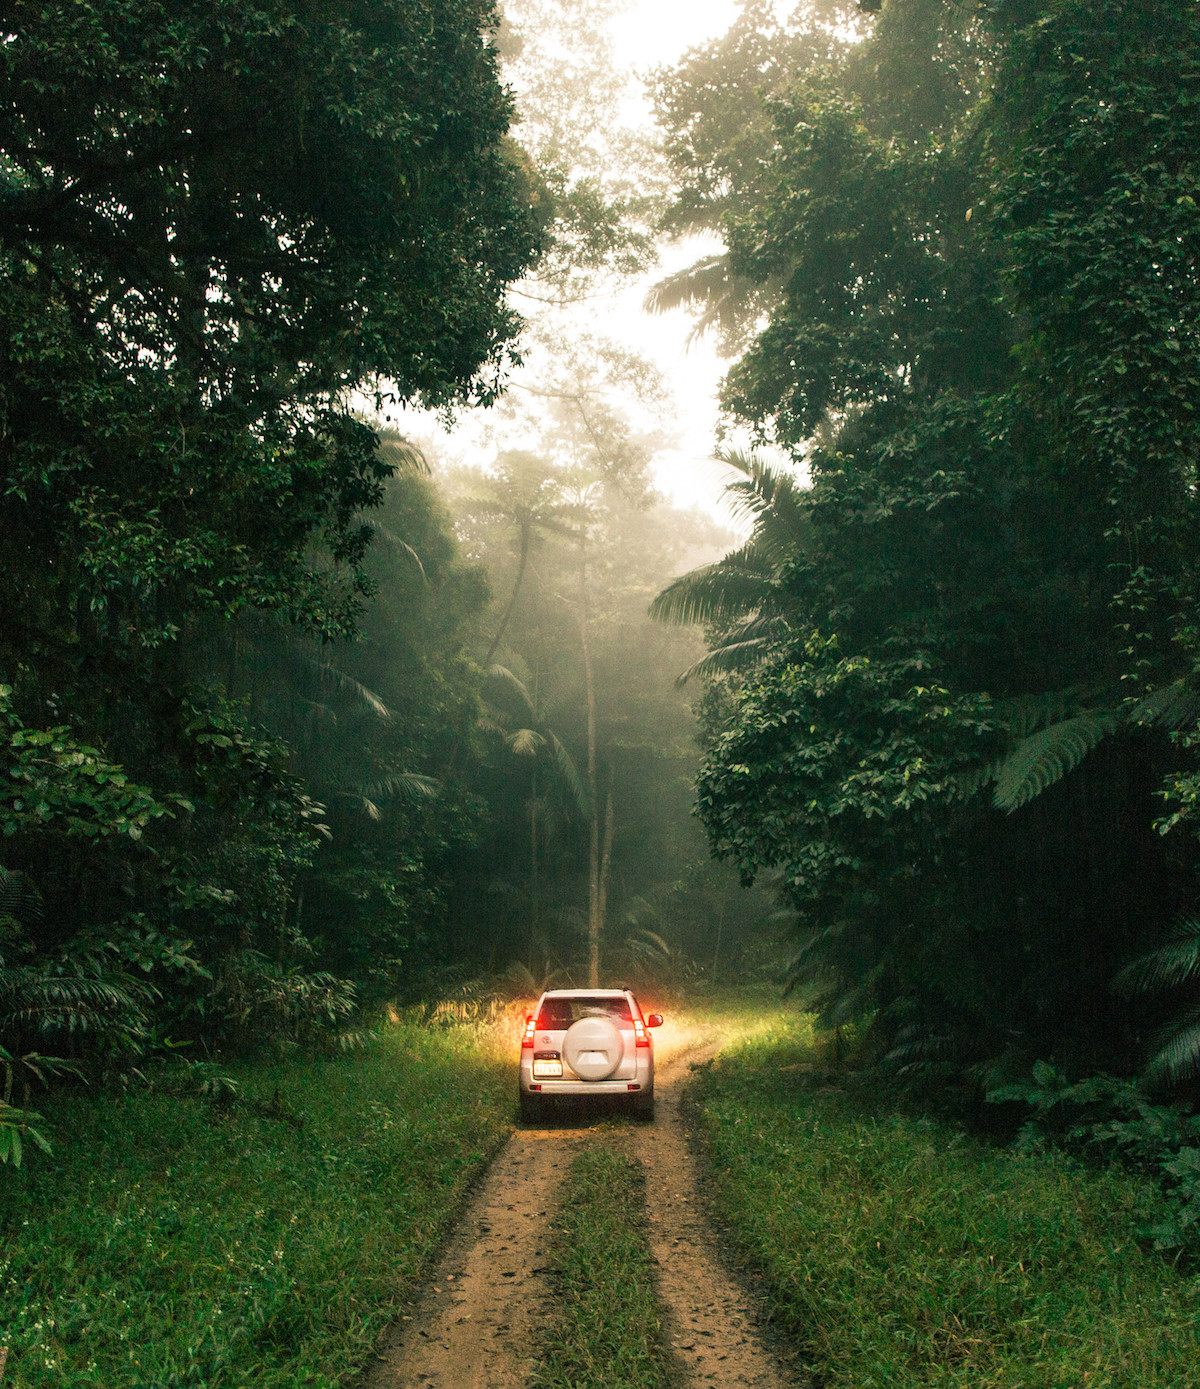 A car drives on a dirt track surrounded by lush bush.